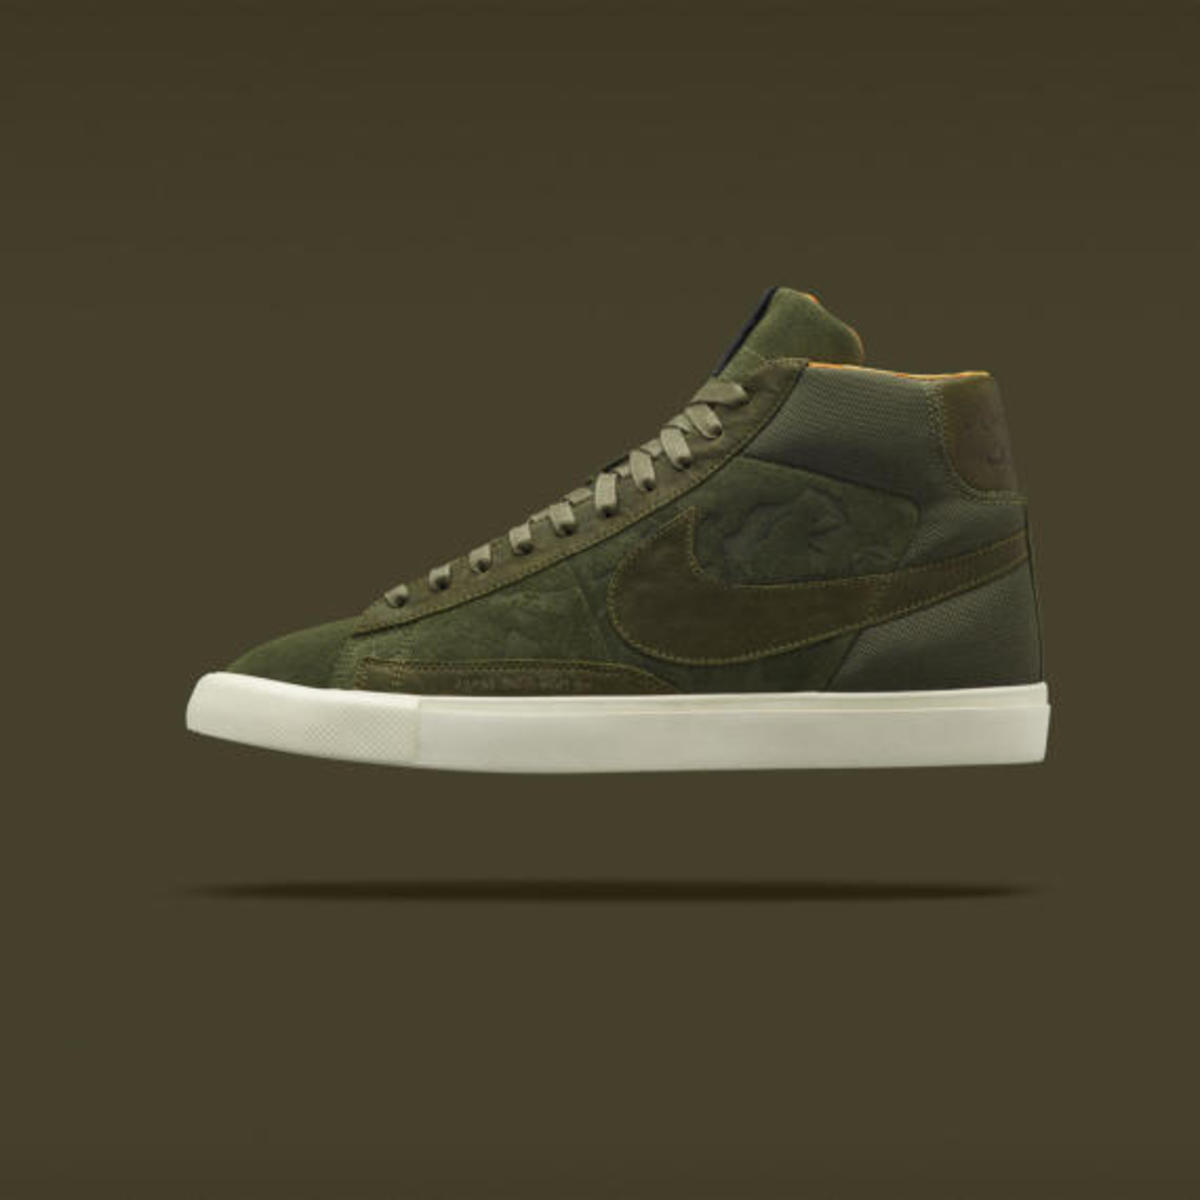 nike-mo-wax-by-james-lavelle-capsule-release-info-09